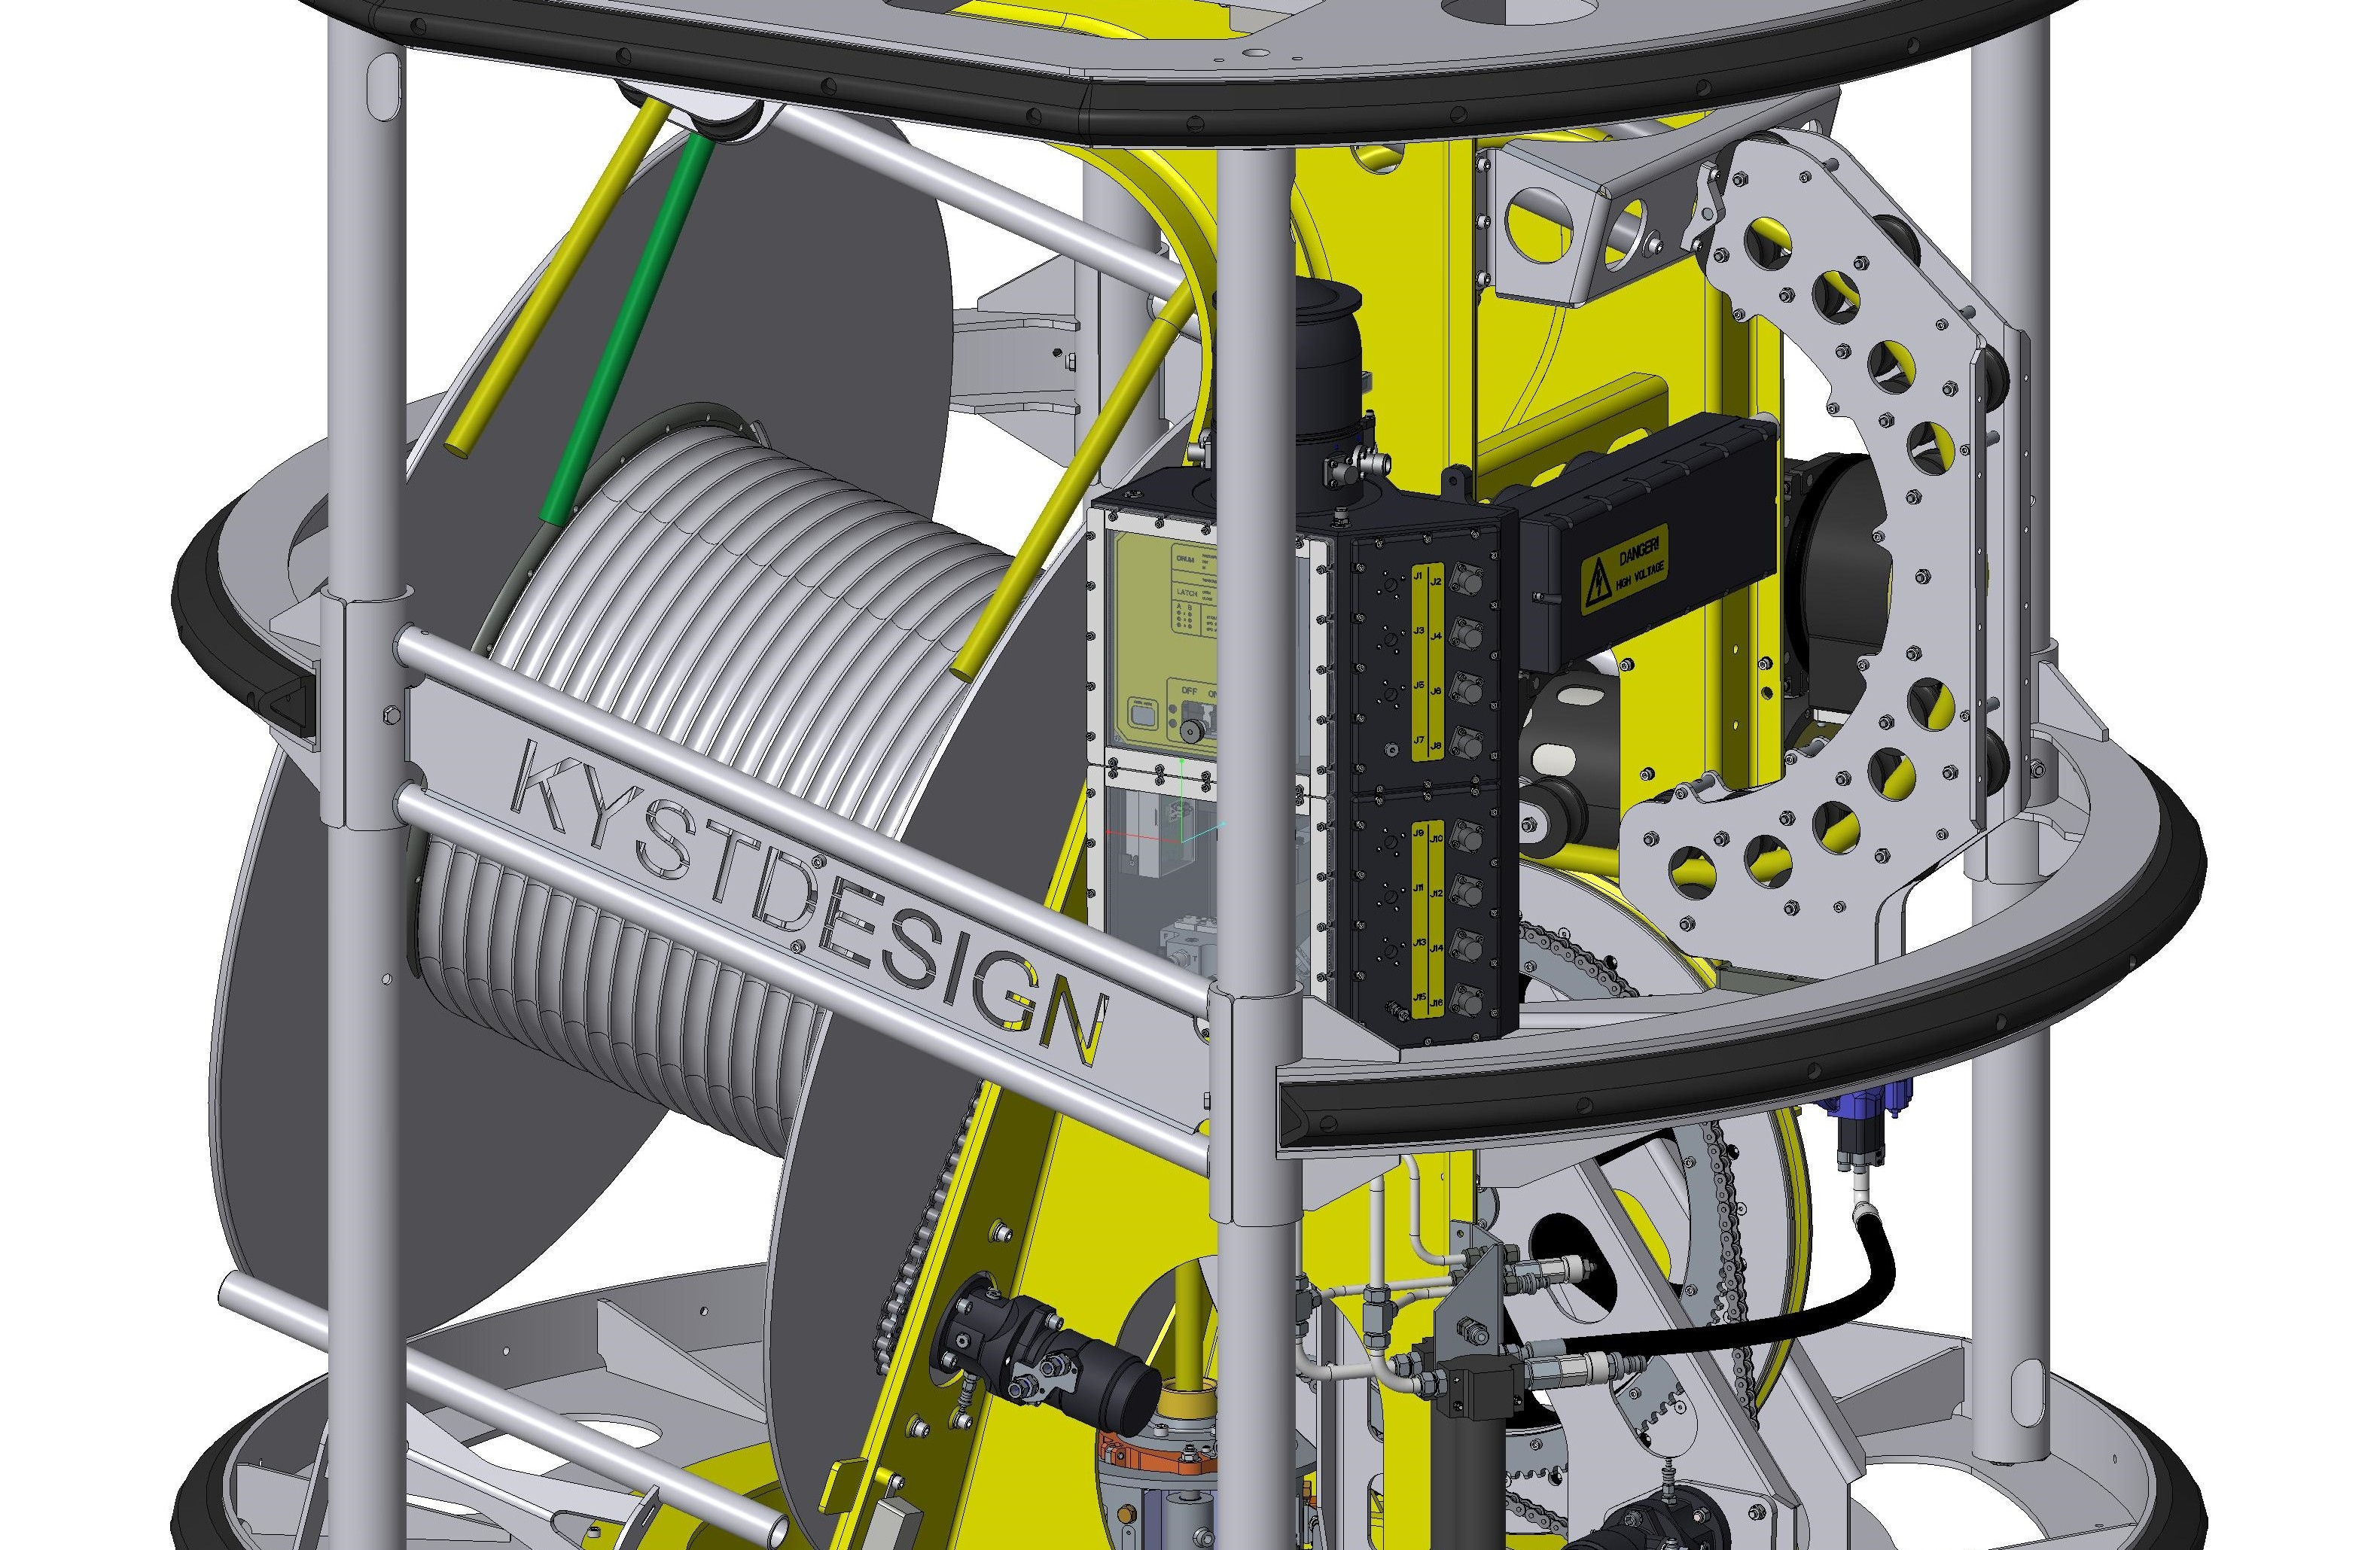 Kystdesign launch new TMS with up to 1000m tether capability and 6000m depth rating ...